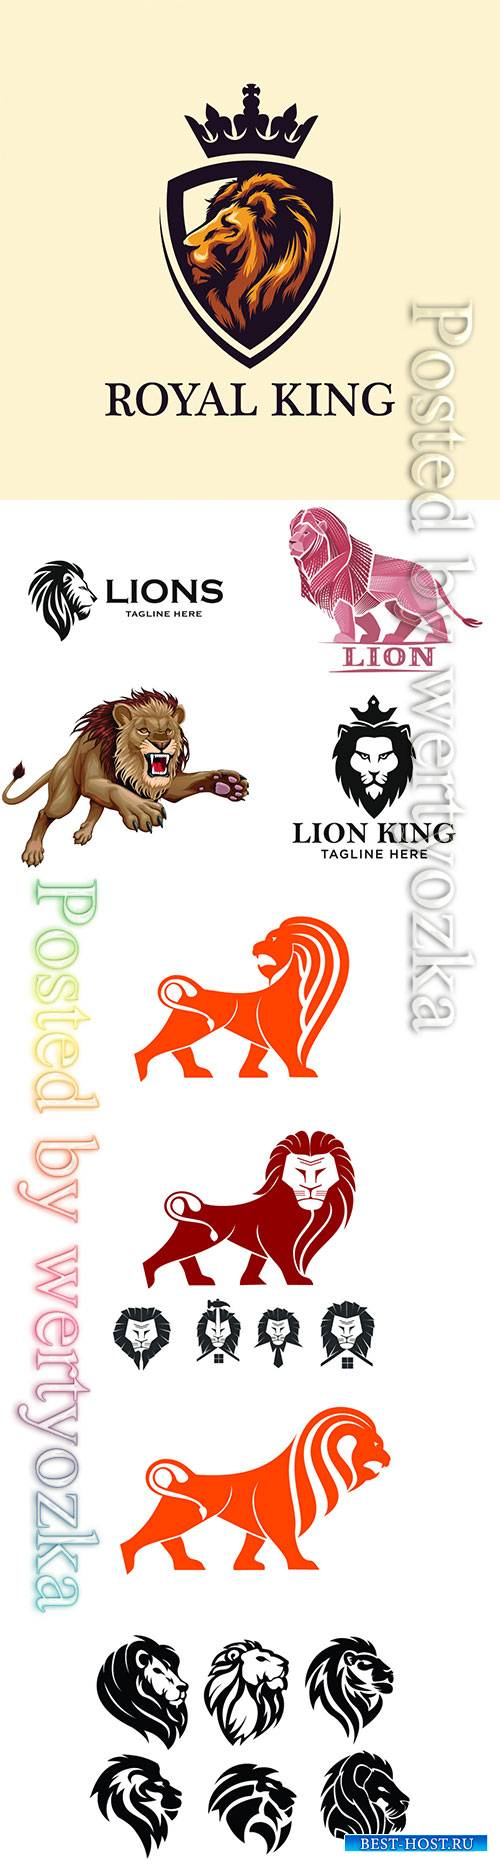 Lion logos vector illustration